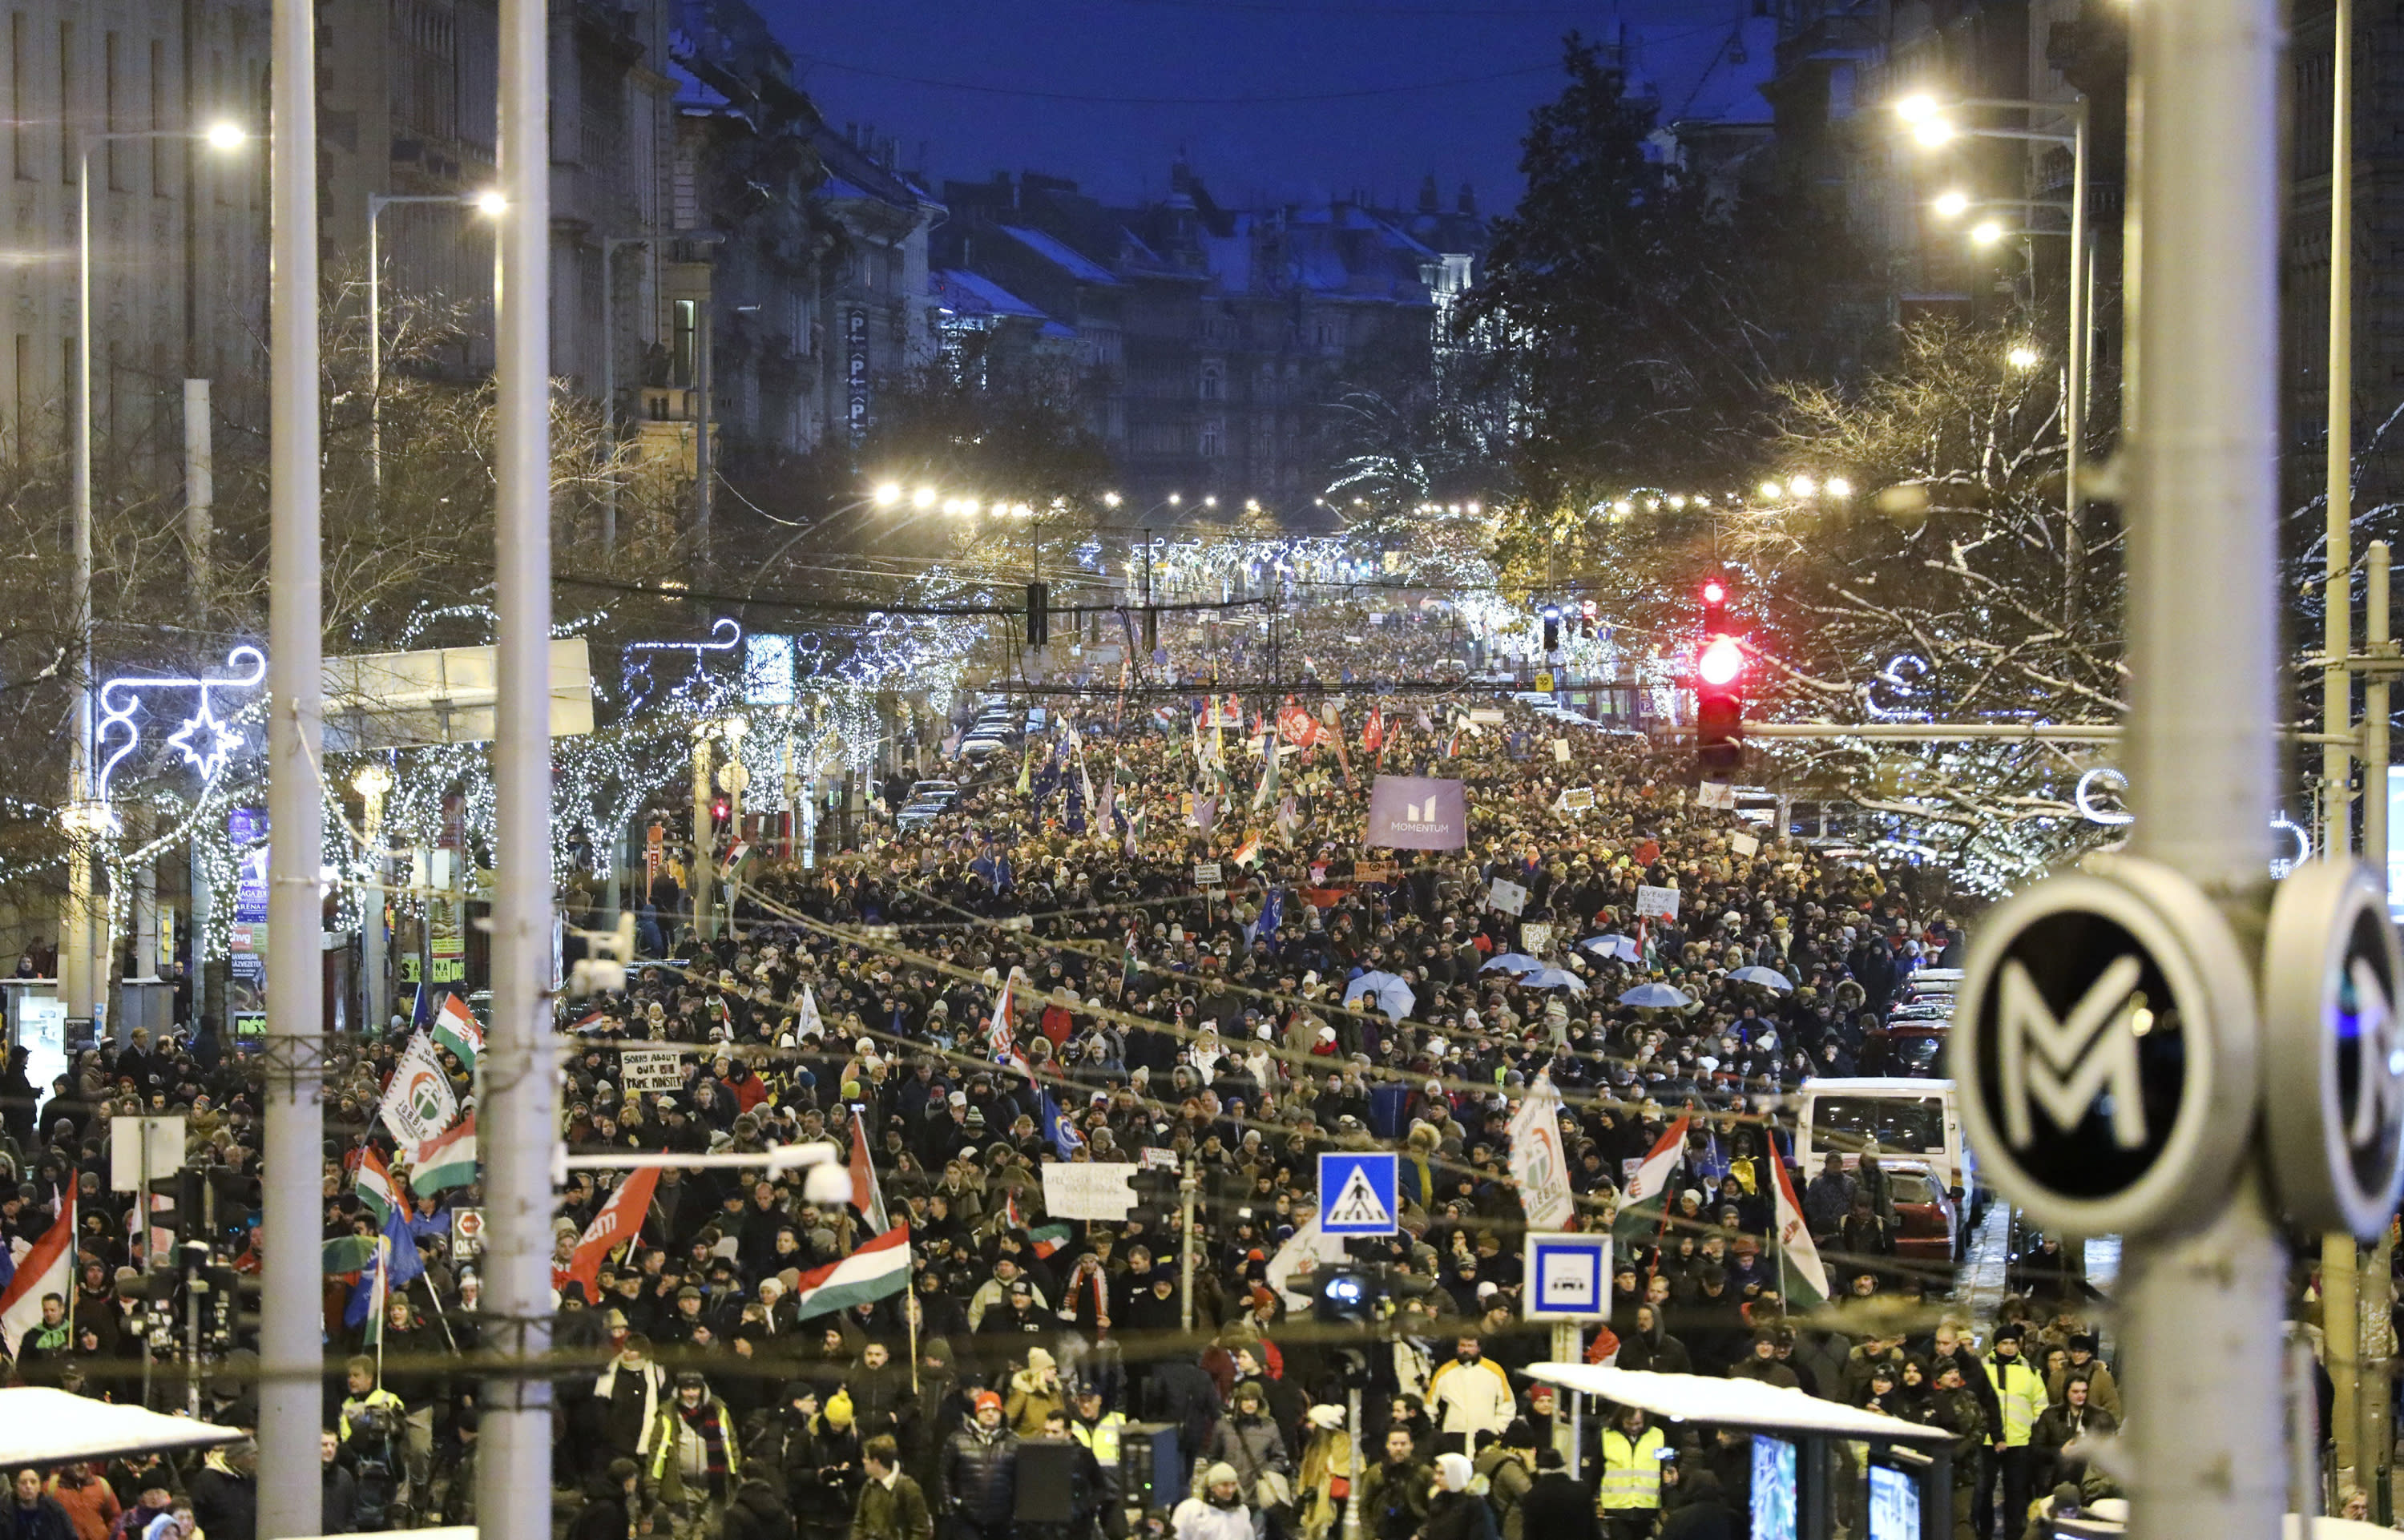 Anti-government demonstrators march under Christmas decorations in the city centre of Budapest, Hungary, Sunday, Dec. 16, 2018. Protesters are demonstrating against recent changes to the labour laws. (Balazs Mohai/MTI via AP)